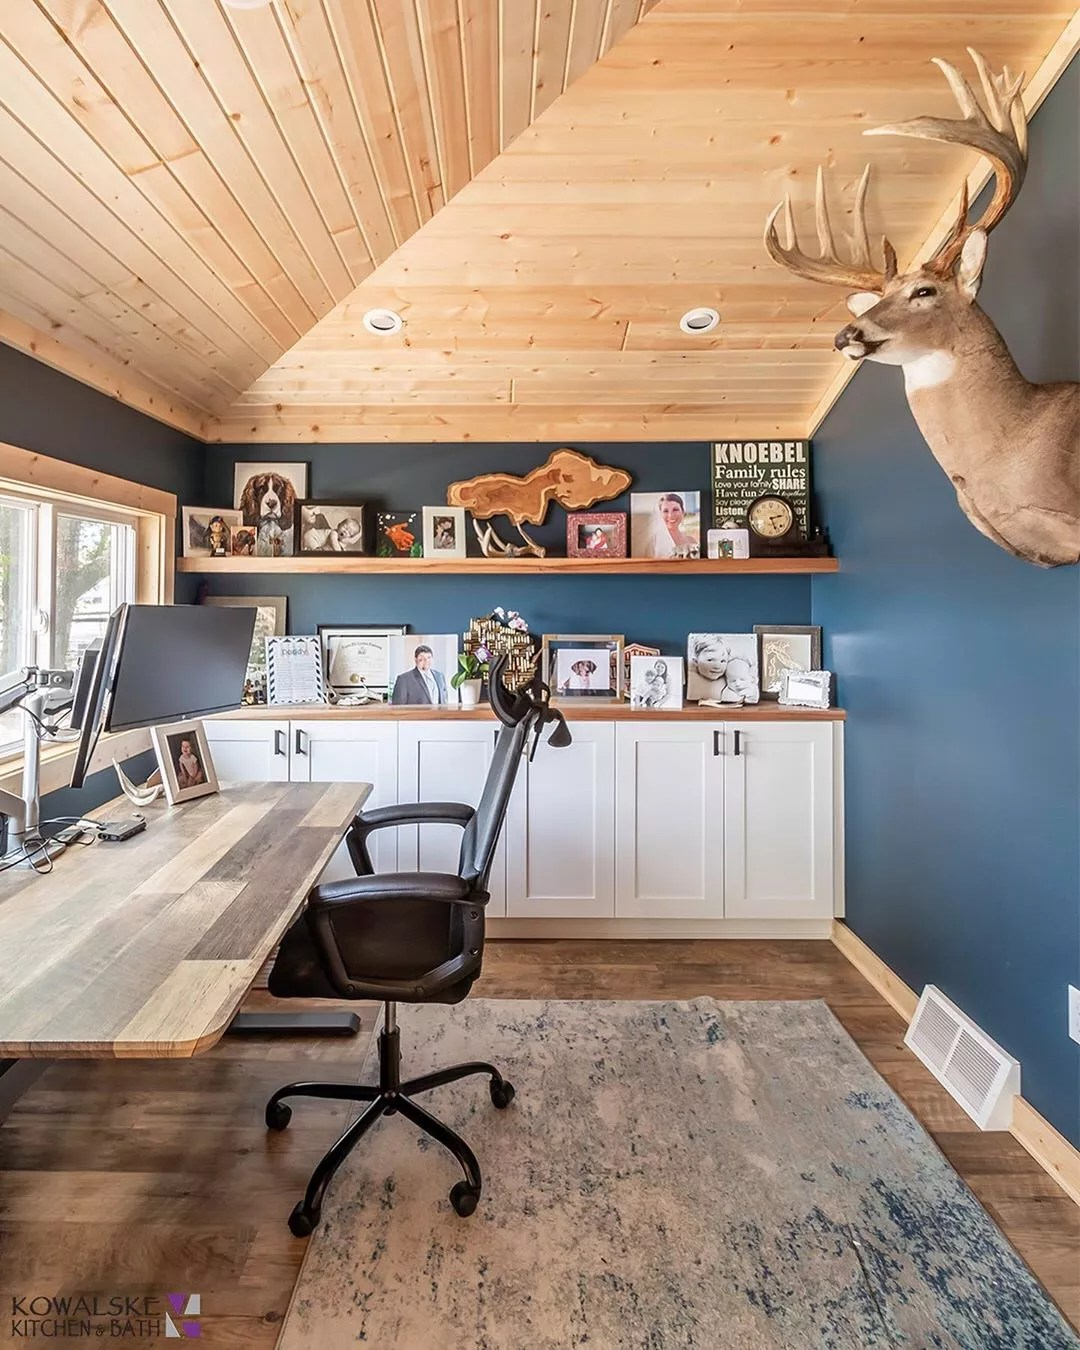 Classic Home Office with Large Reclaimed Wood Desk and Deer Head on the Wall. Photo by Instagram user @kowalskekitchenandbath